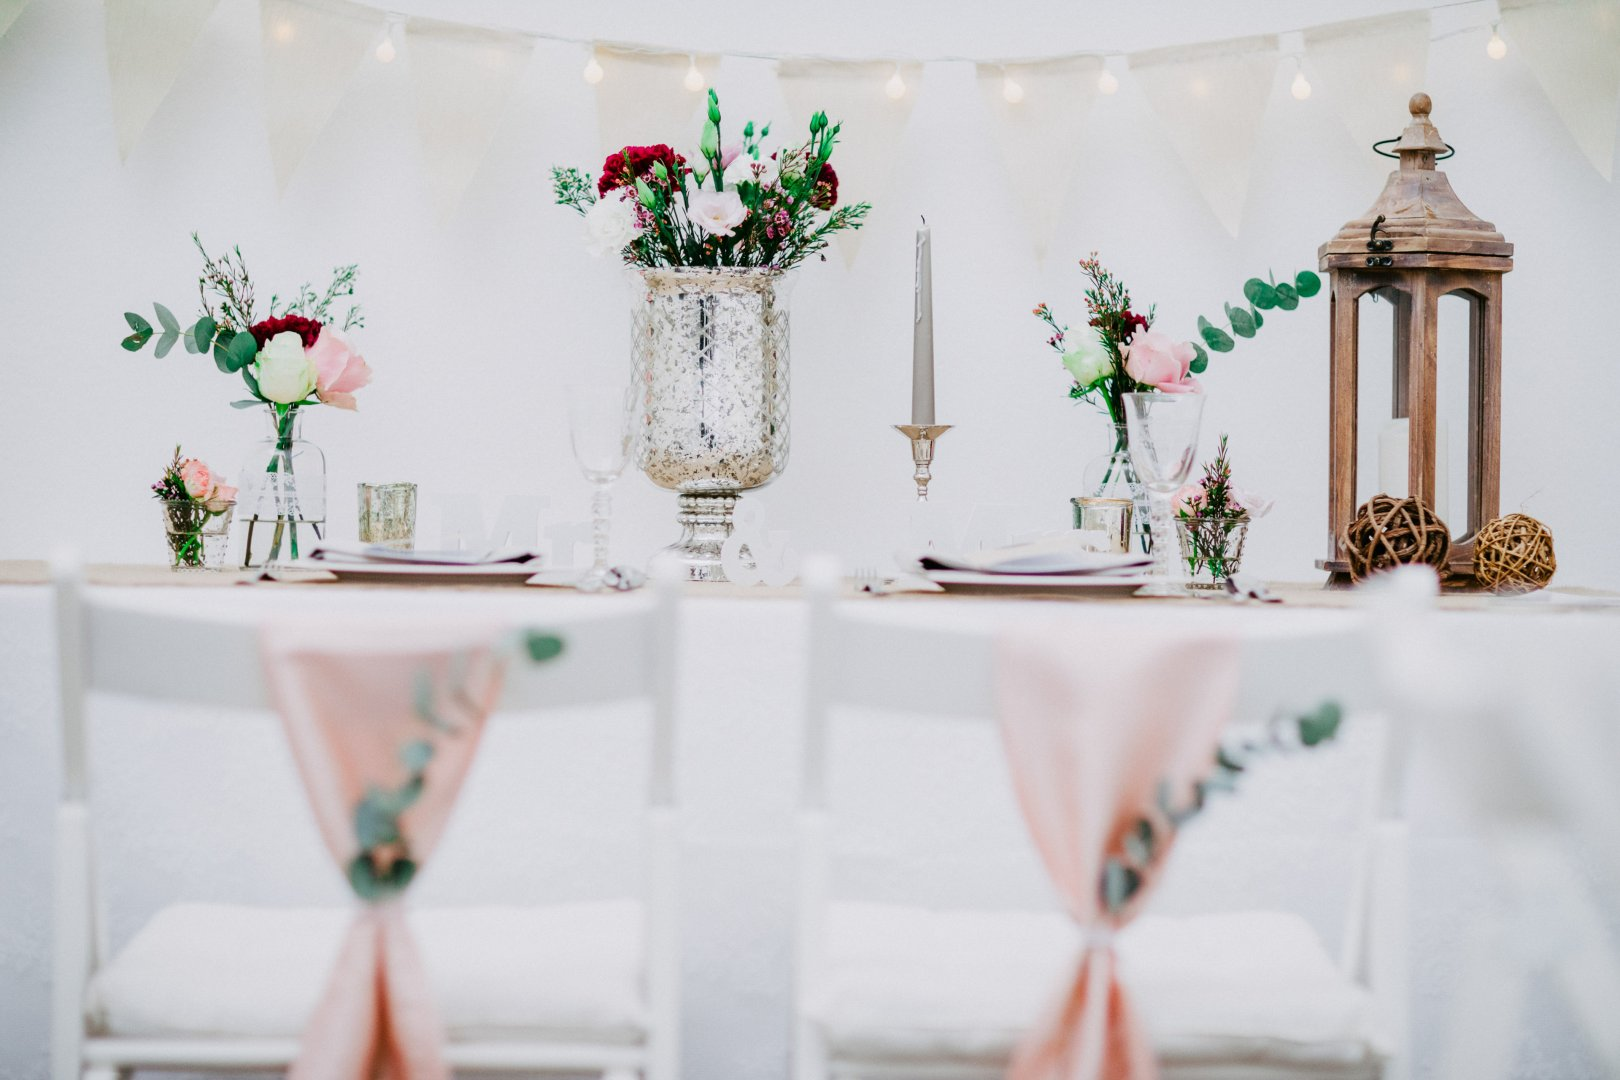 Decoration Photograph Green Table Pink Room Furniture Interior design Party Centrepiece Event Chair Textile Floral design Flower Plant Wedding reception Ceremony Floristry Tablecloth Vase Peach Tableware Interior design